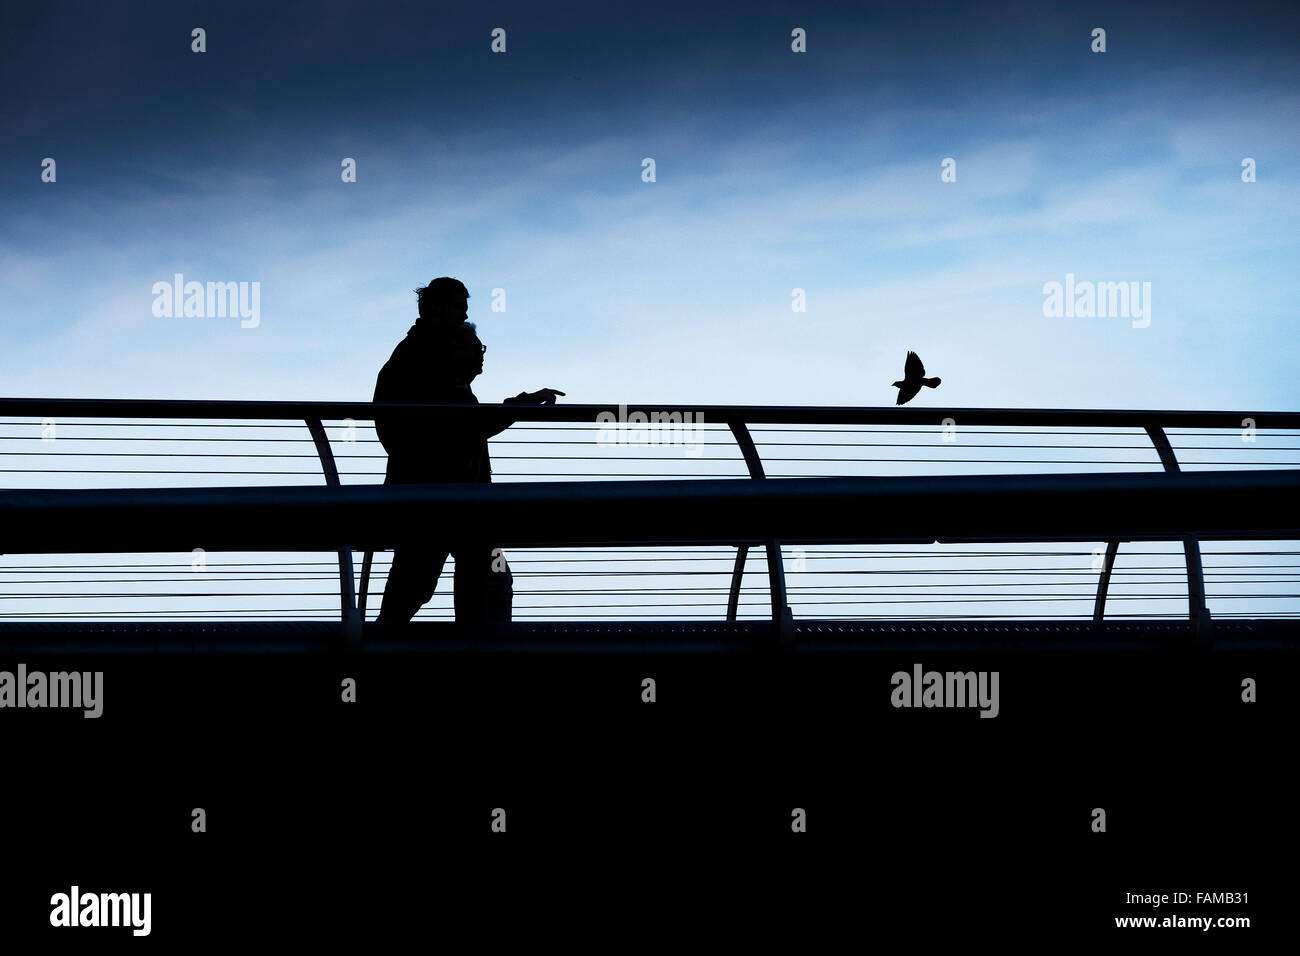 The silhouette of two people and a bird on the Millenium Bridge in London. - Stock Image